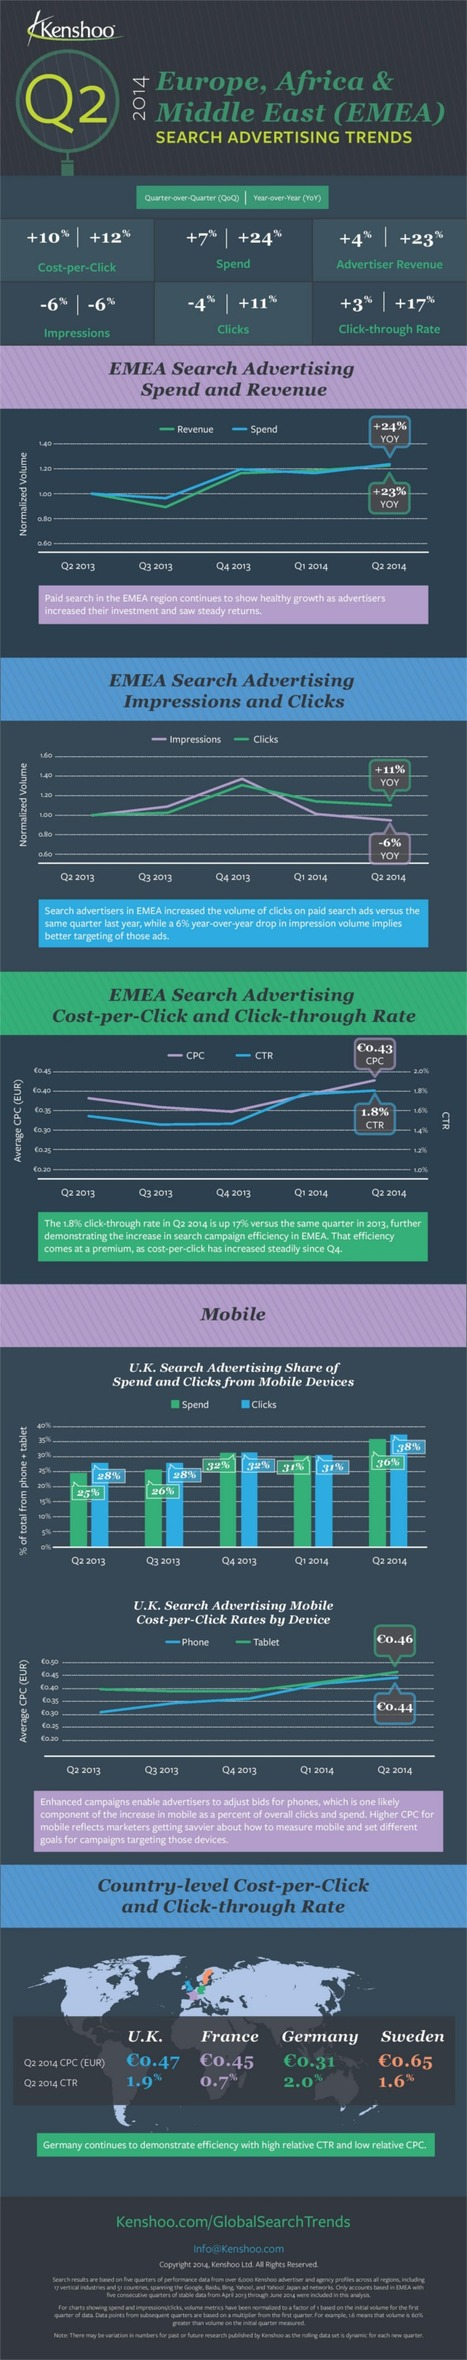 Search advertising spend up 24% in Europe (Infographic) | MarketingHits | Scoop.it